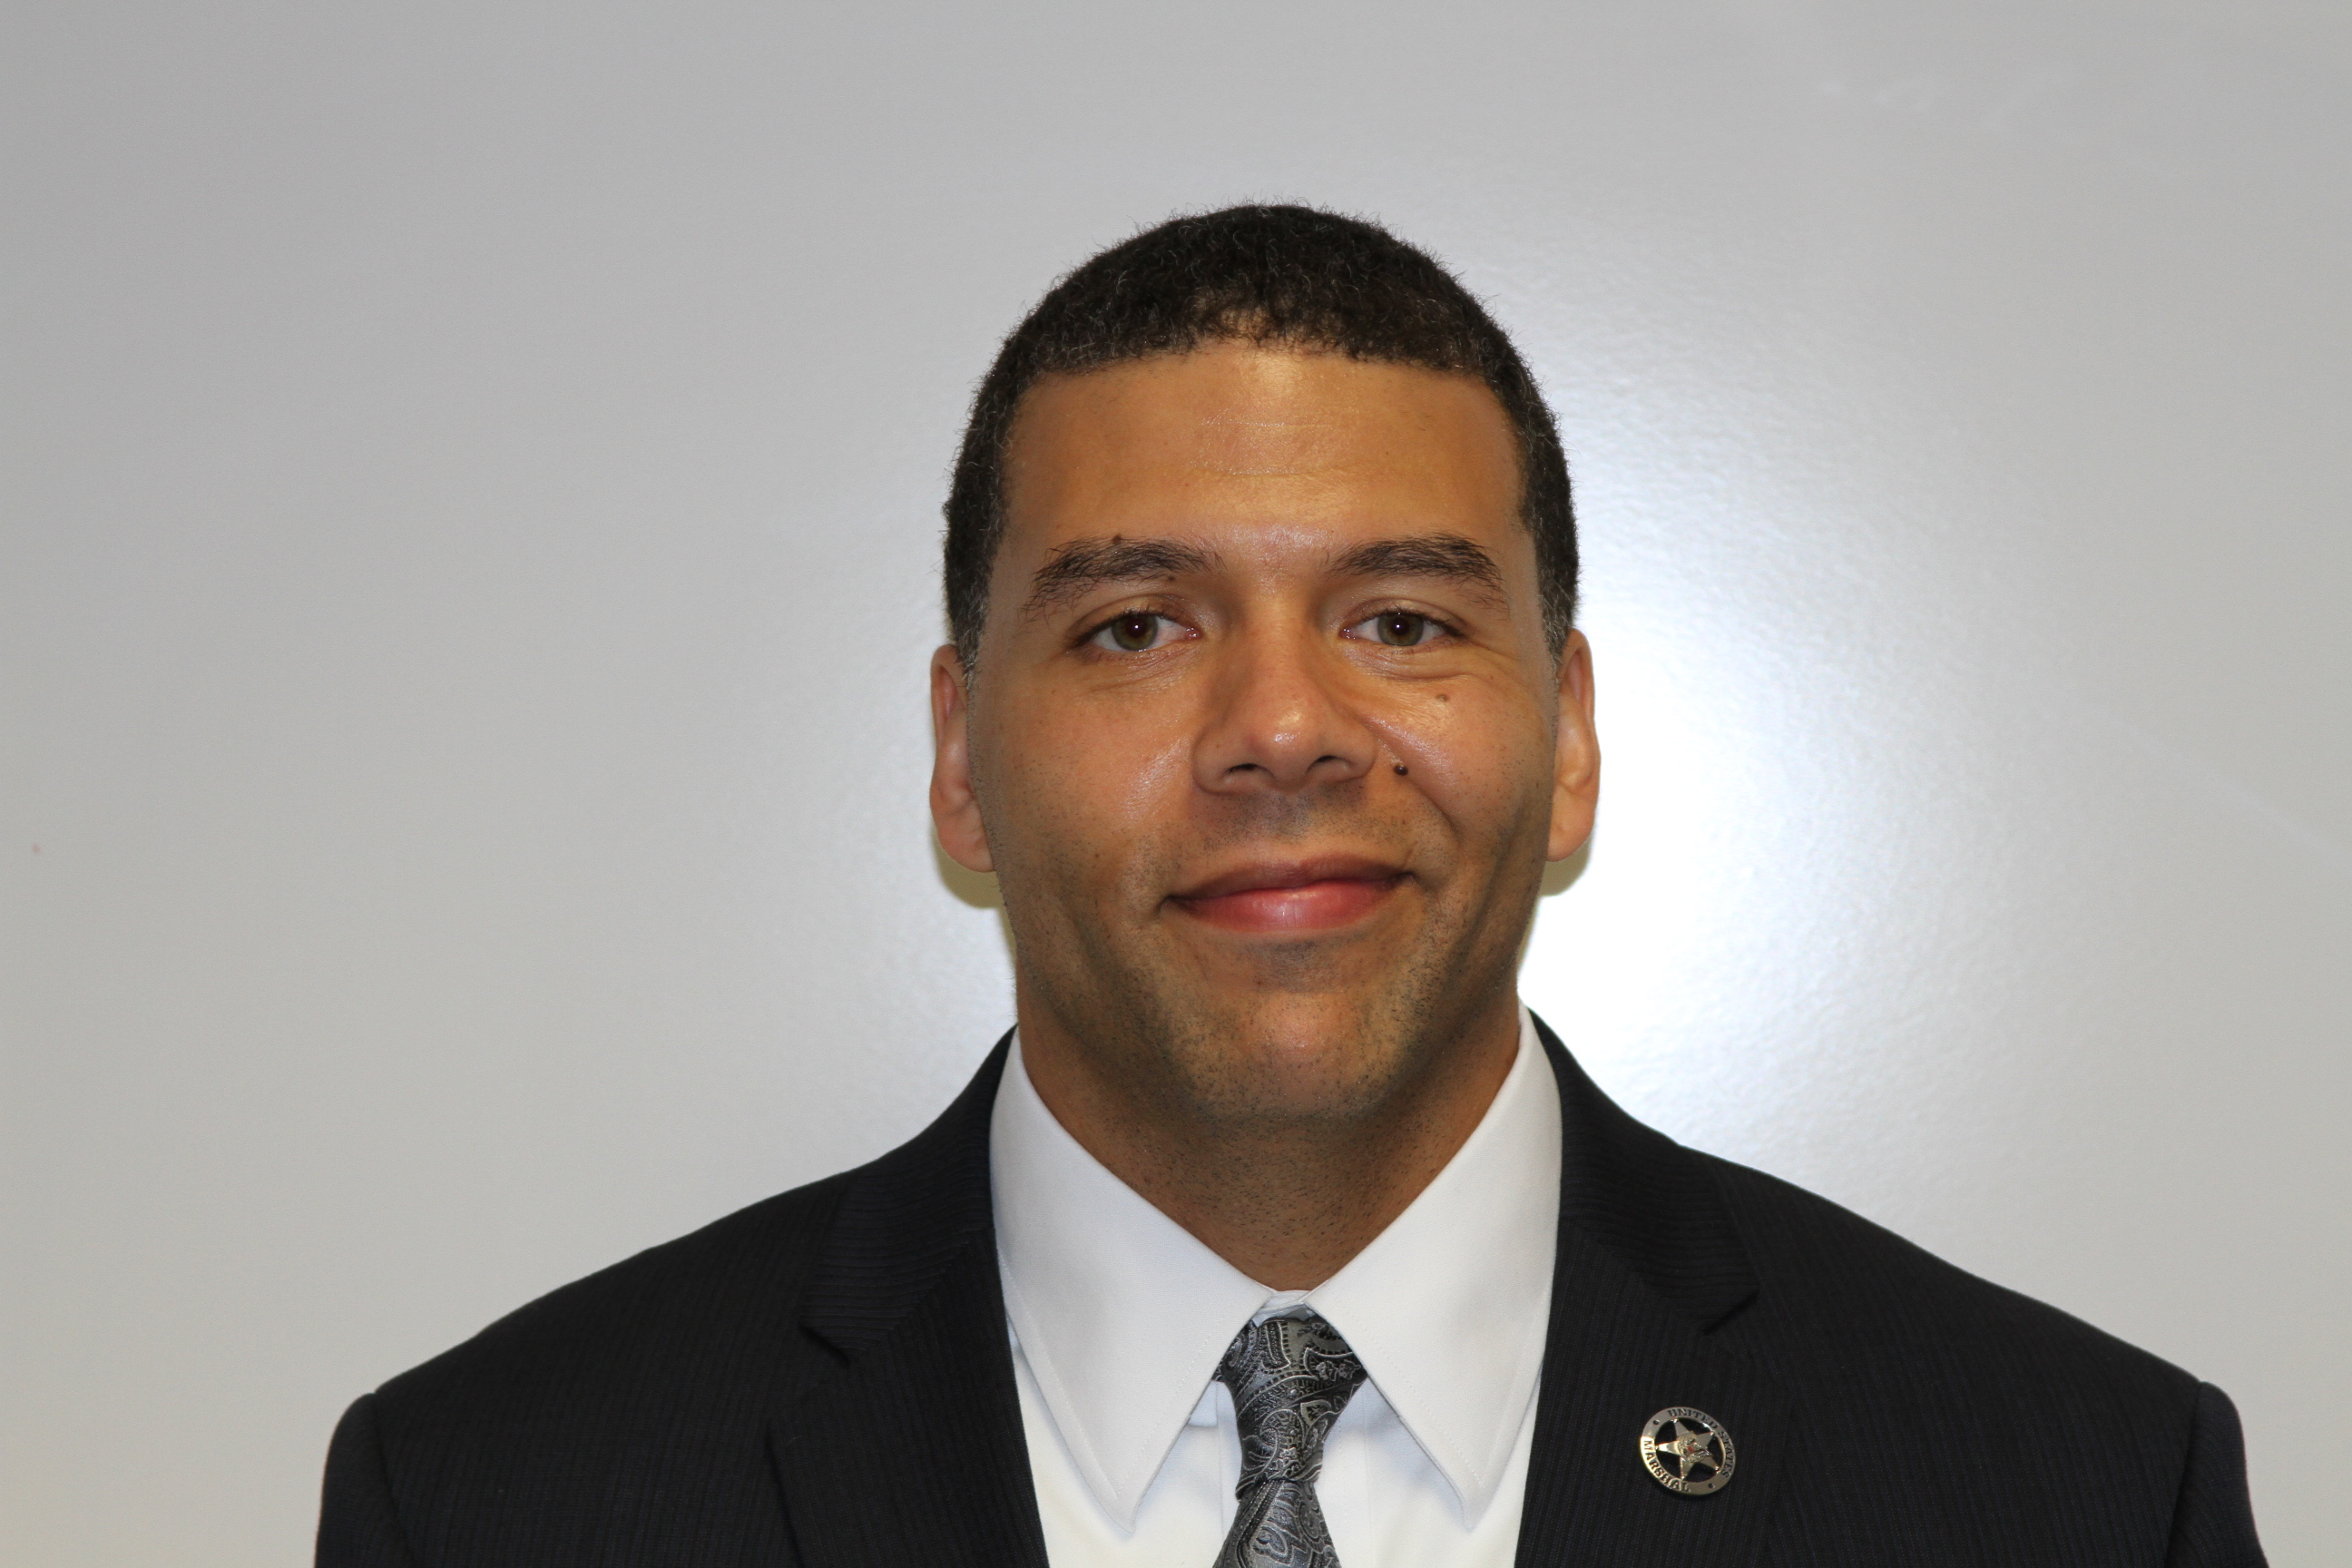 Deputy U.S. Marshal Chase S. White | United States Department of Justice - United States Marshals Service, U.S. Government